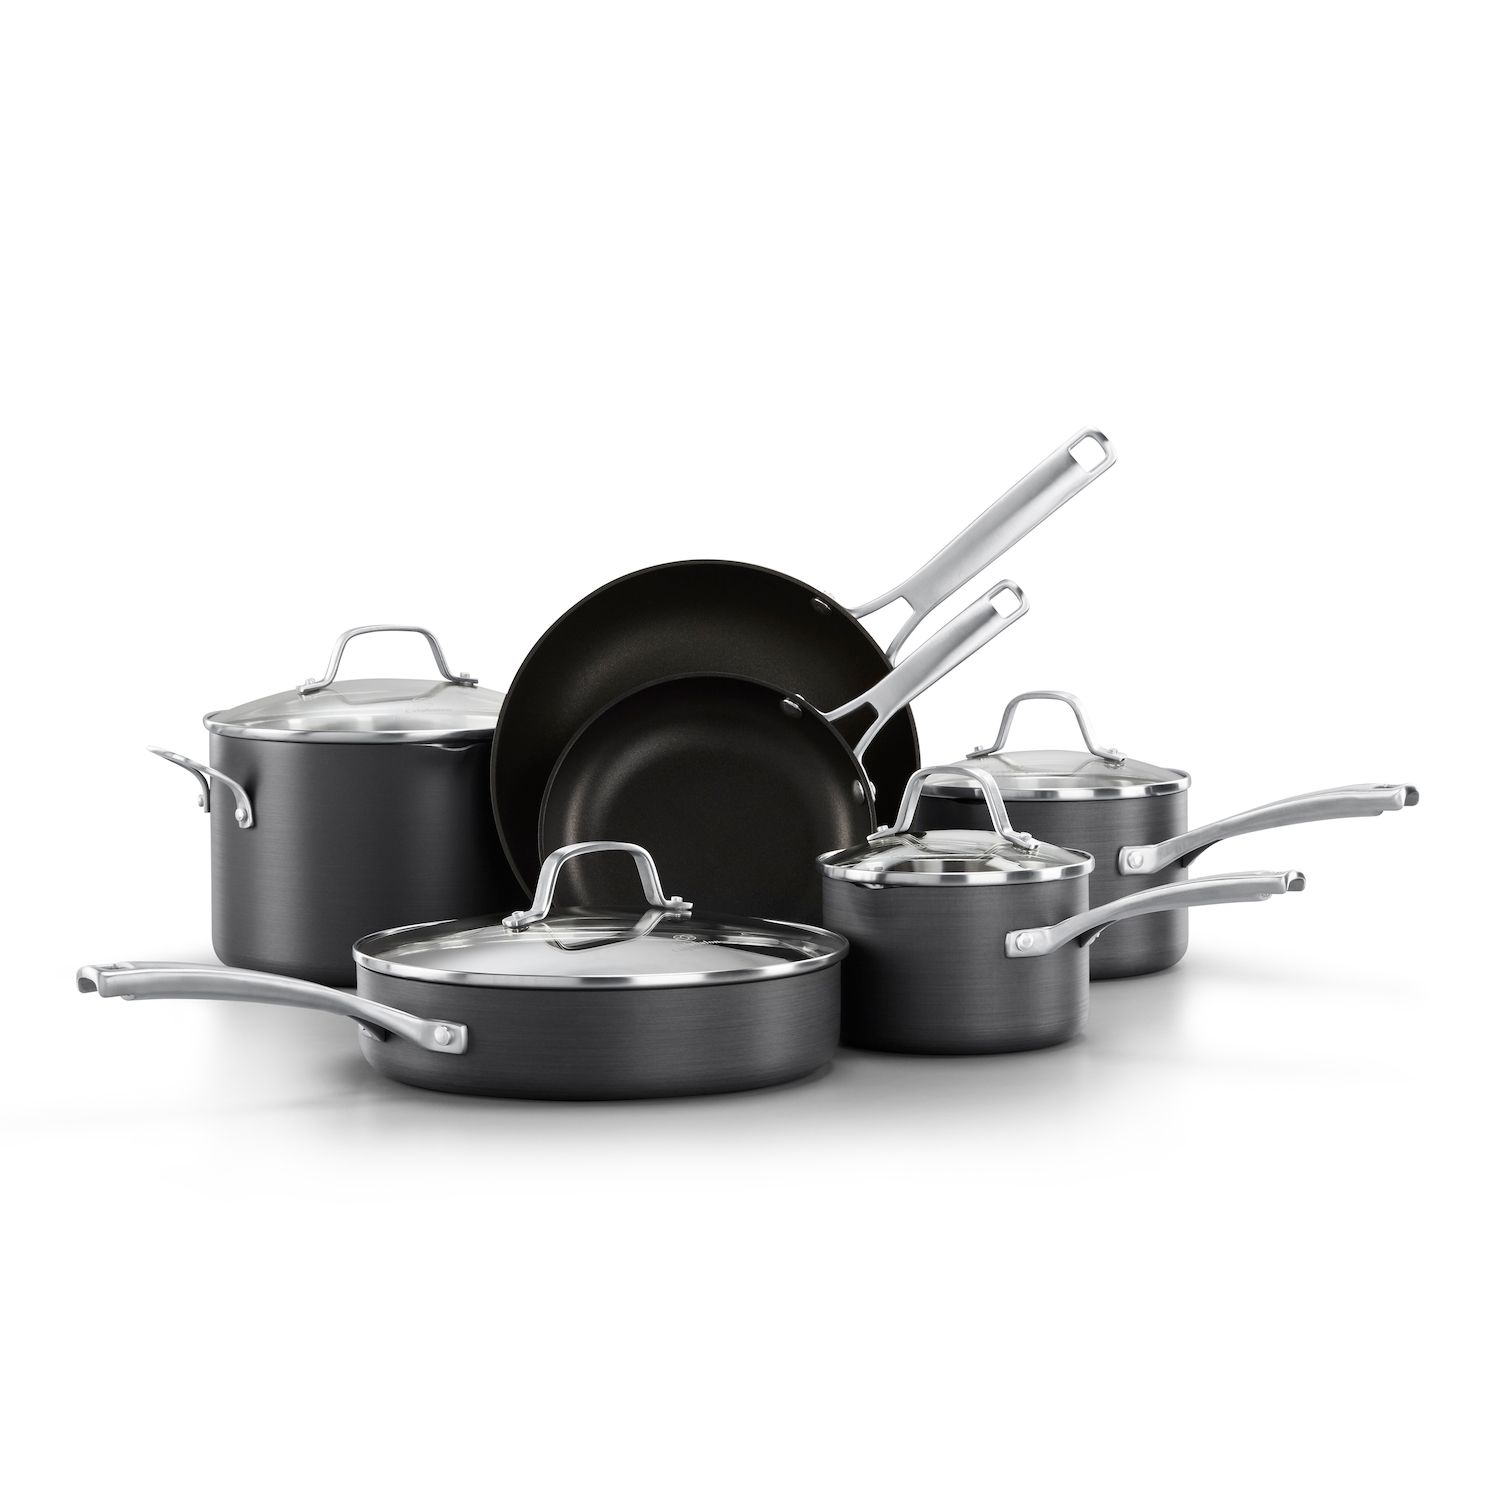 calphalon classic 10pc aluminum nonstick cookware set